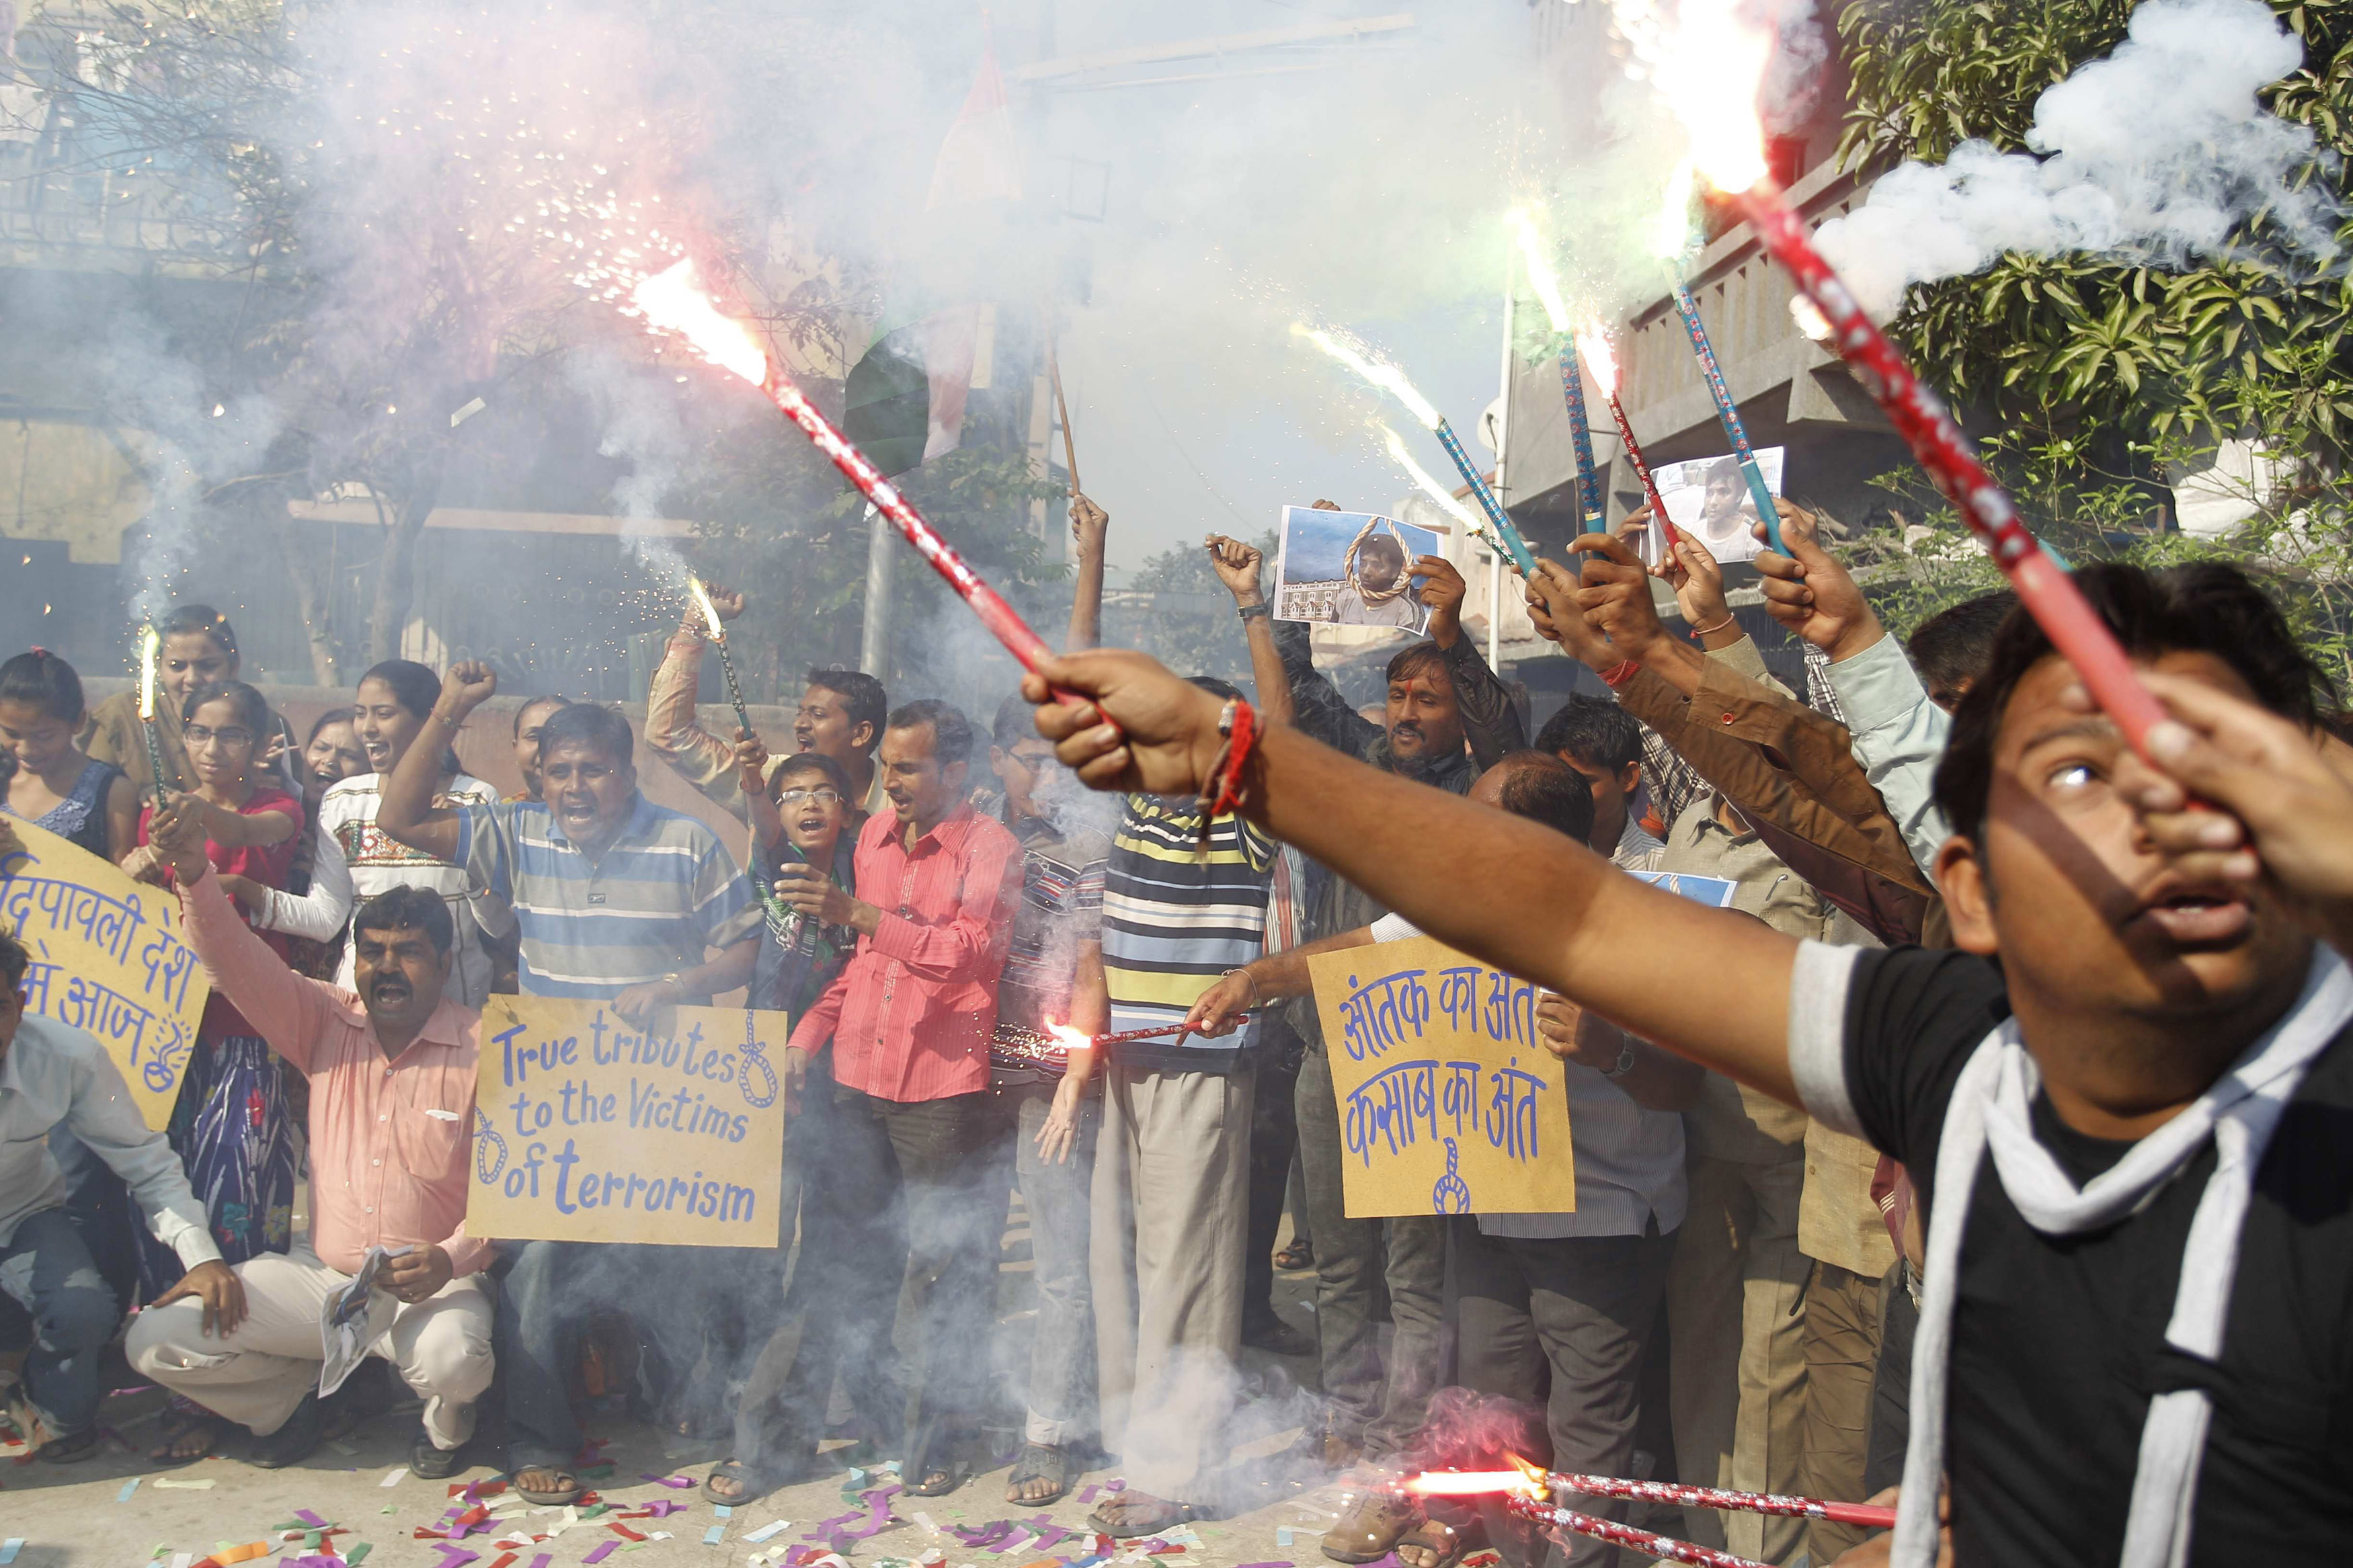 Indians celebrate upon hearing the news of India executing Mohammed Ajmal Kasab, the lone surviving gunman from the 2008 terror attacks, in Ahmadabad, India, Wednesday, Nov. 21, 2012. Kasab, a Pakistani citizen, was one of 10 gunmen who rampaged through the streets of India's financial capital for three days in November 2008, killing 166 people. Kasab was hung in secrecy at 7:30 a.m. Wednesday at a jail in Pune, a city near Mumbai, after Indian President Pranab Mukherjee rejected his plea for mercy. (AP Photo/Ajit Solanki)